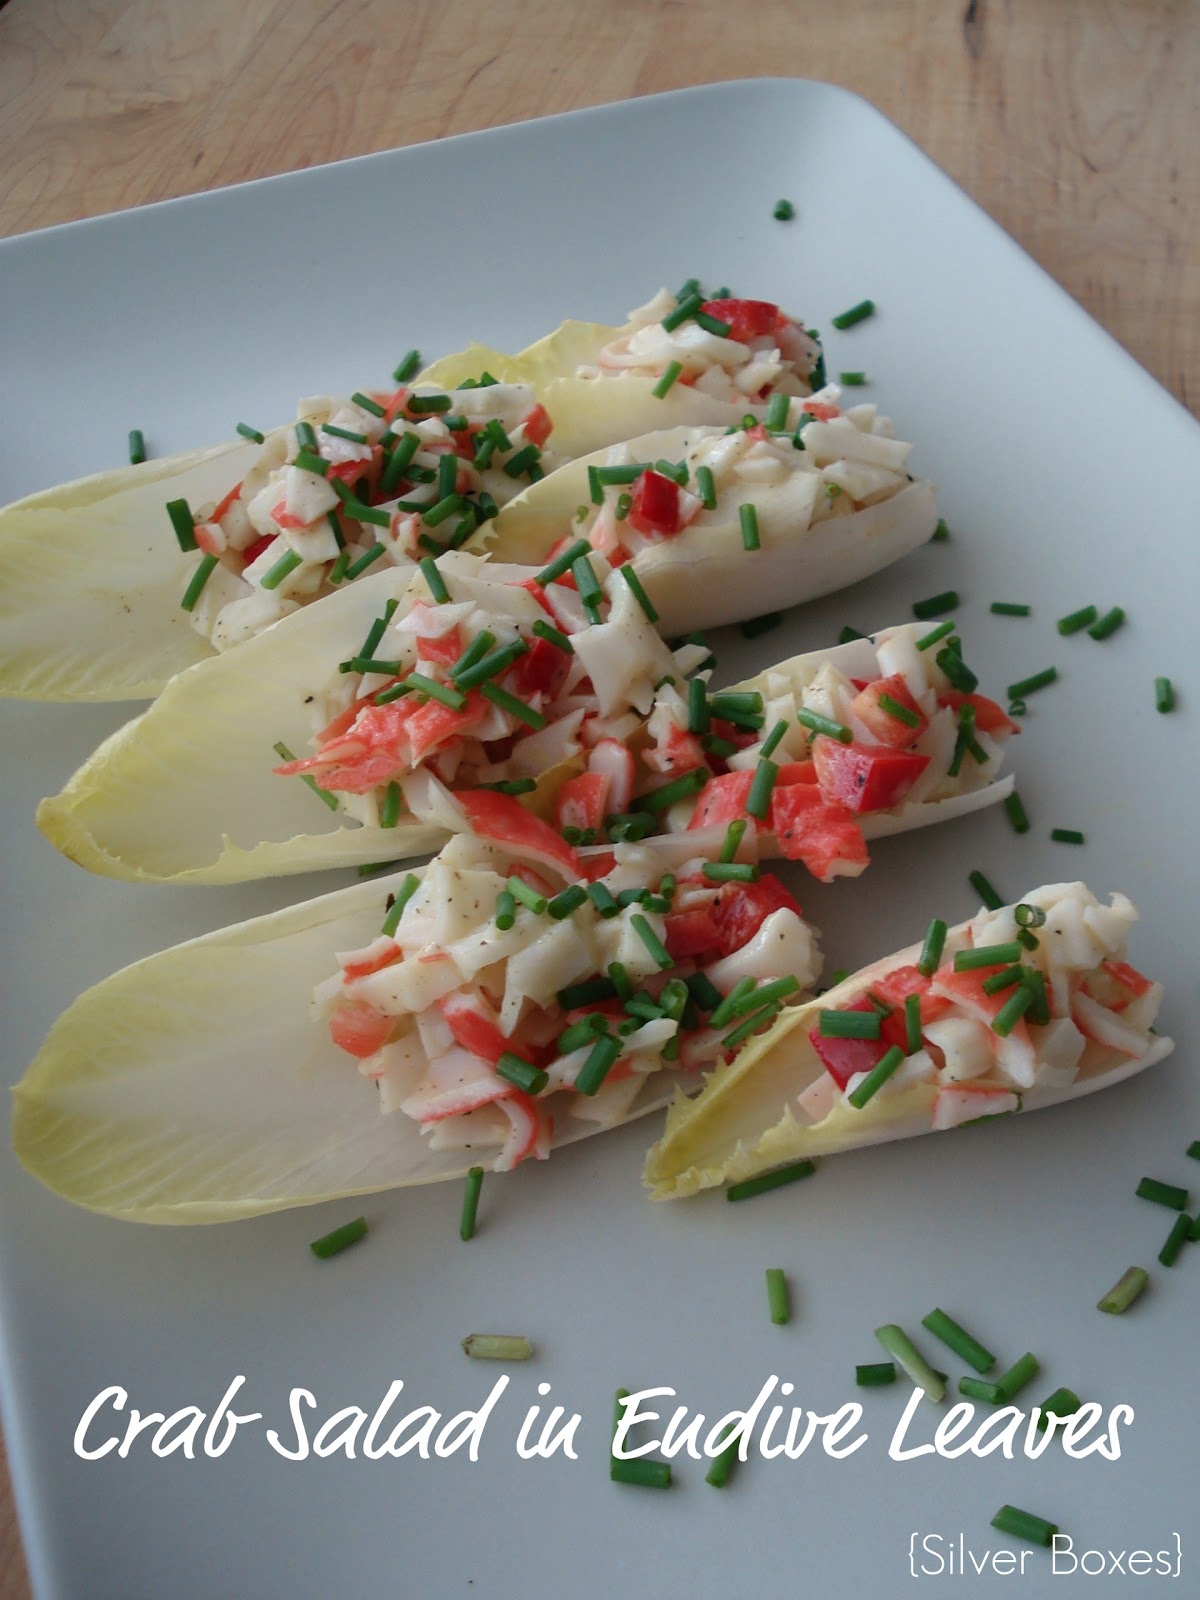 Silver Boxes: Crab Salad in Endive Leaves